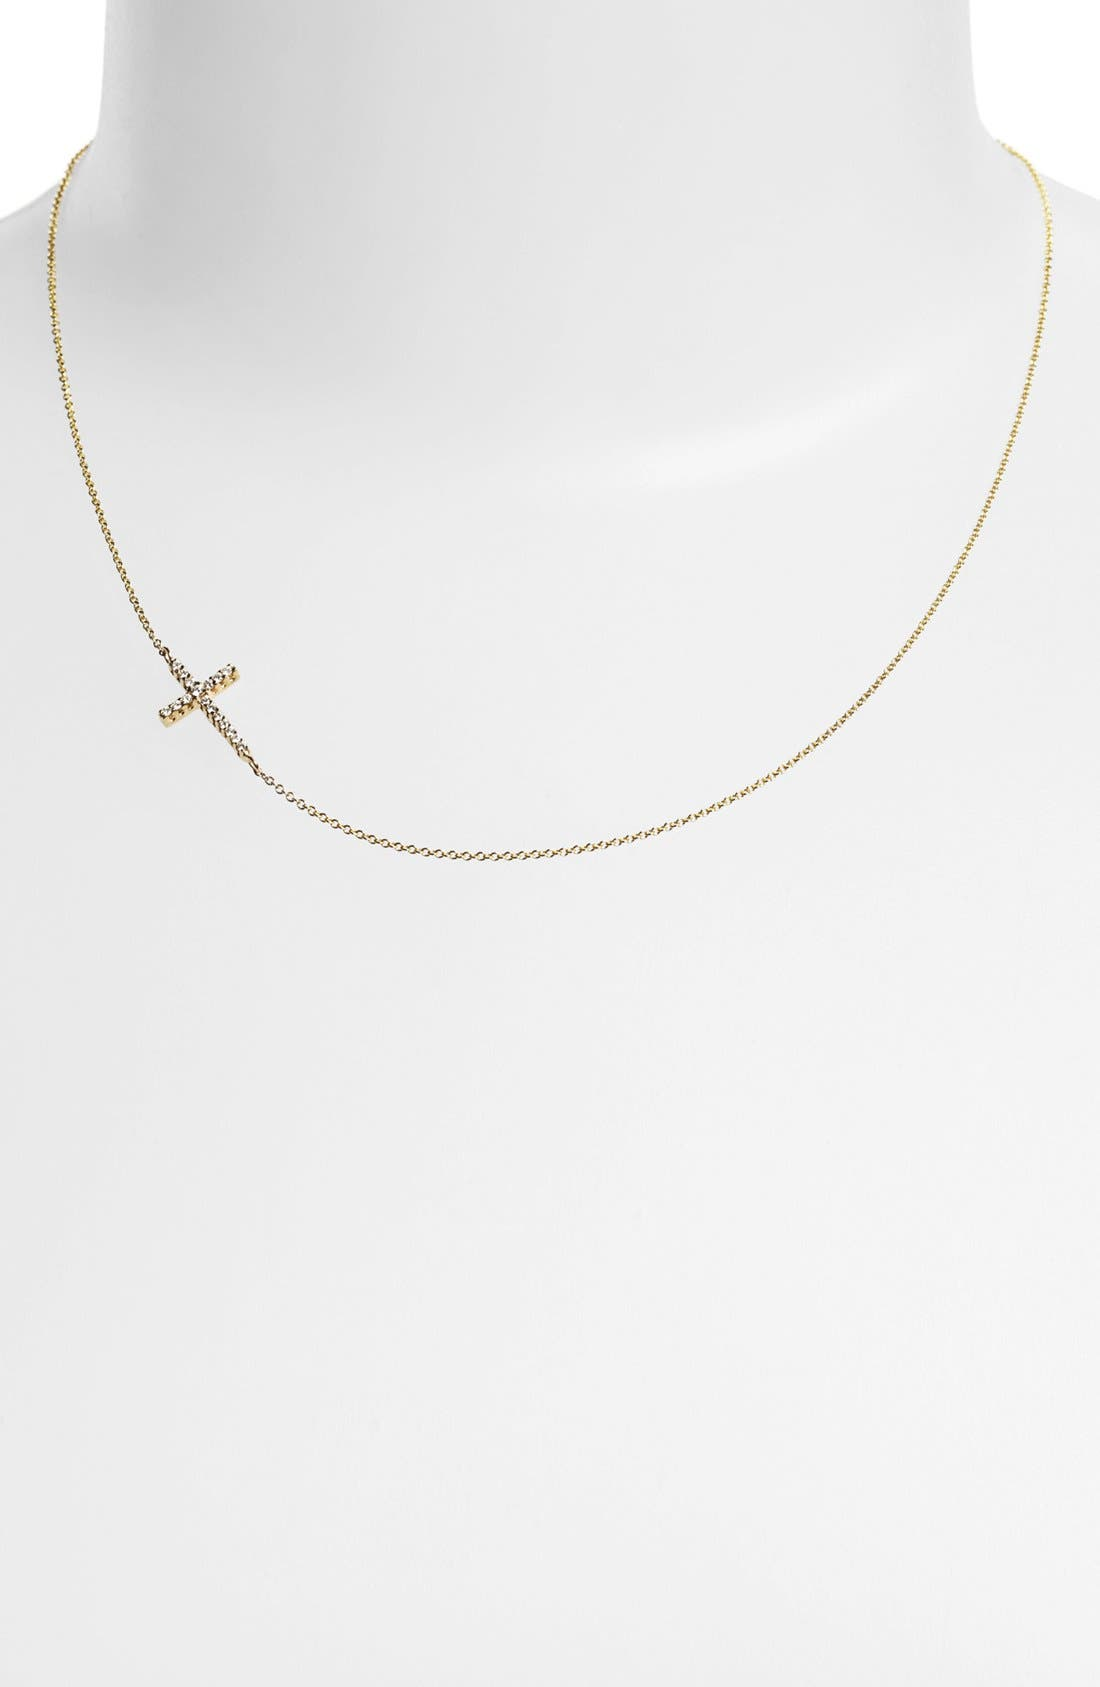 Alternate Image 1 Selected - Mizuki Diamond Cross Station Necklace